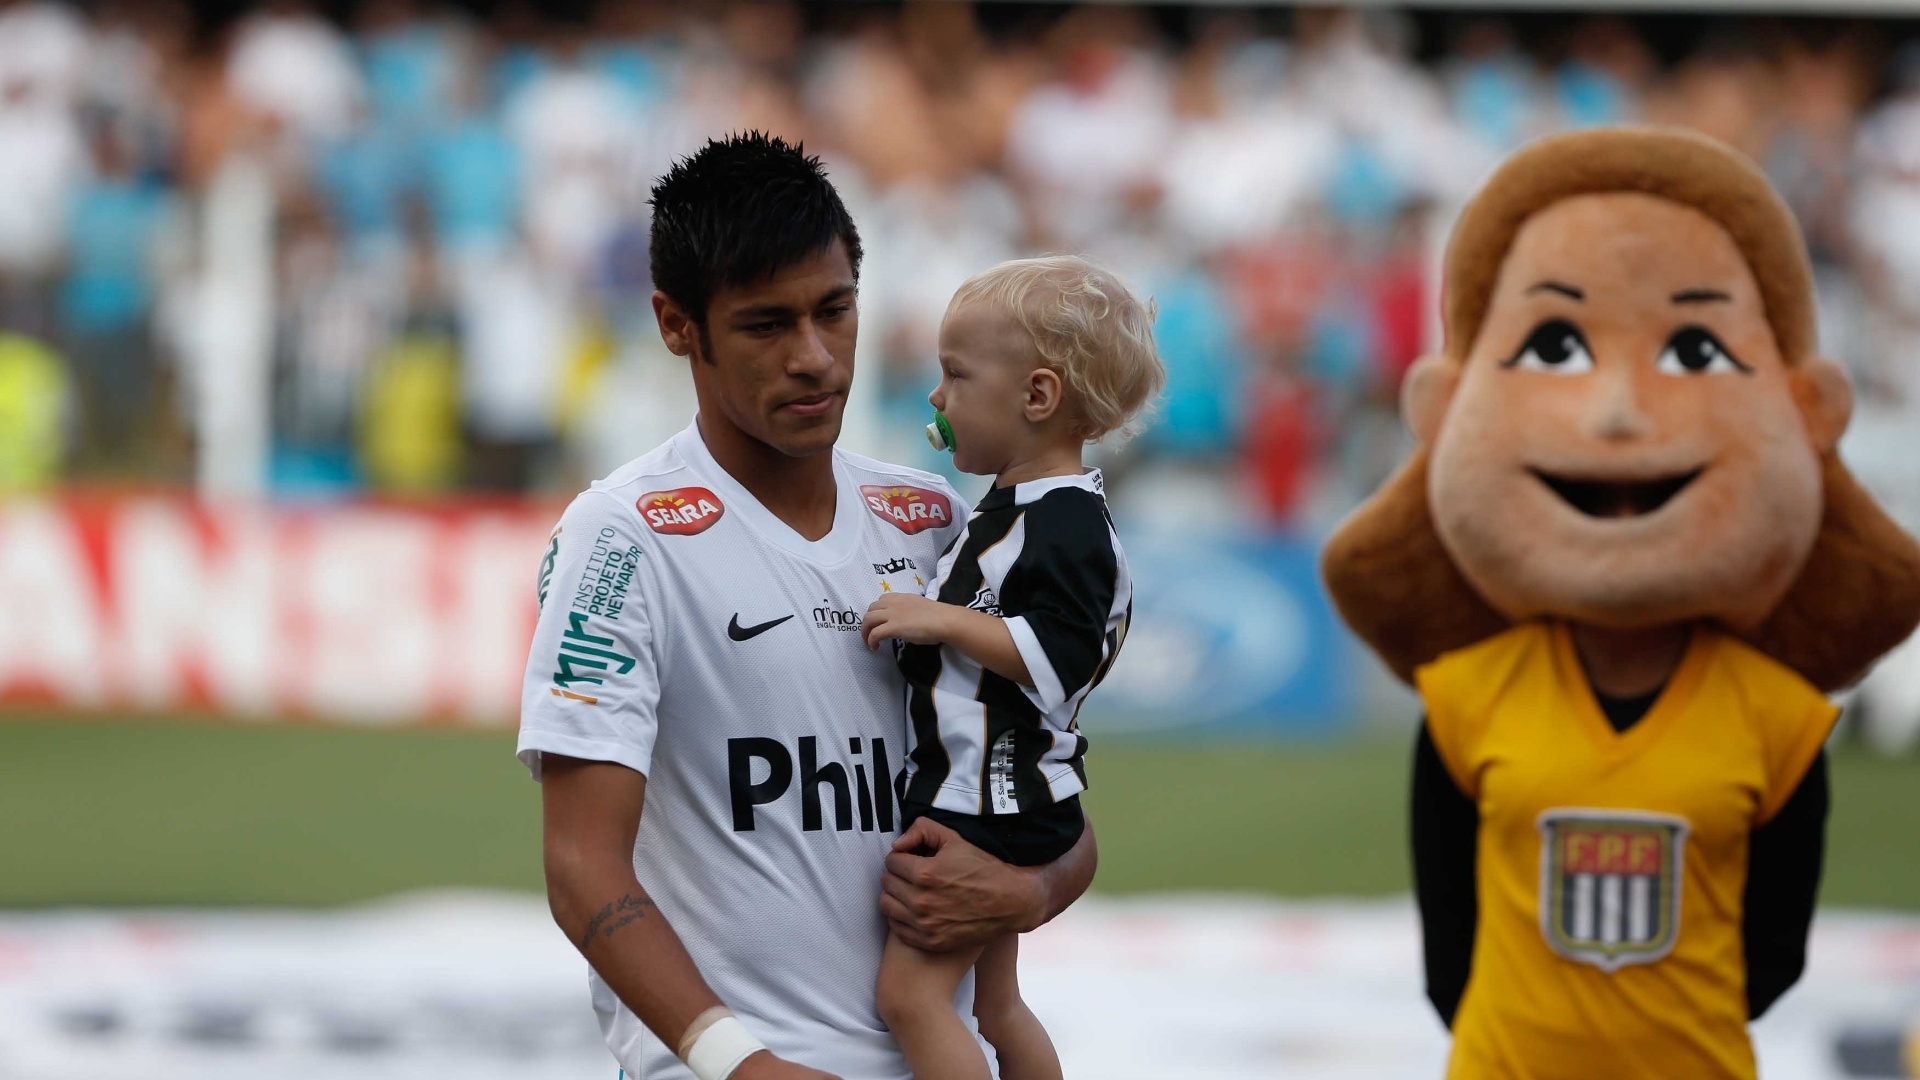 Neymar chega com o filho no colo para a partida contra o Palmeiras, pelas quartas do Paulisto